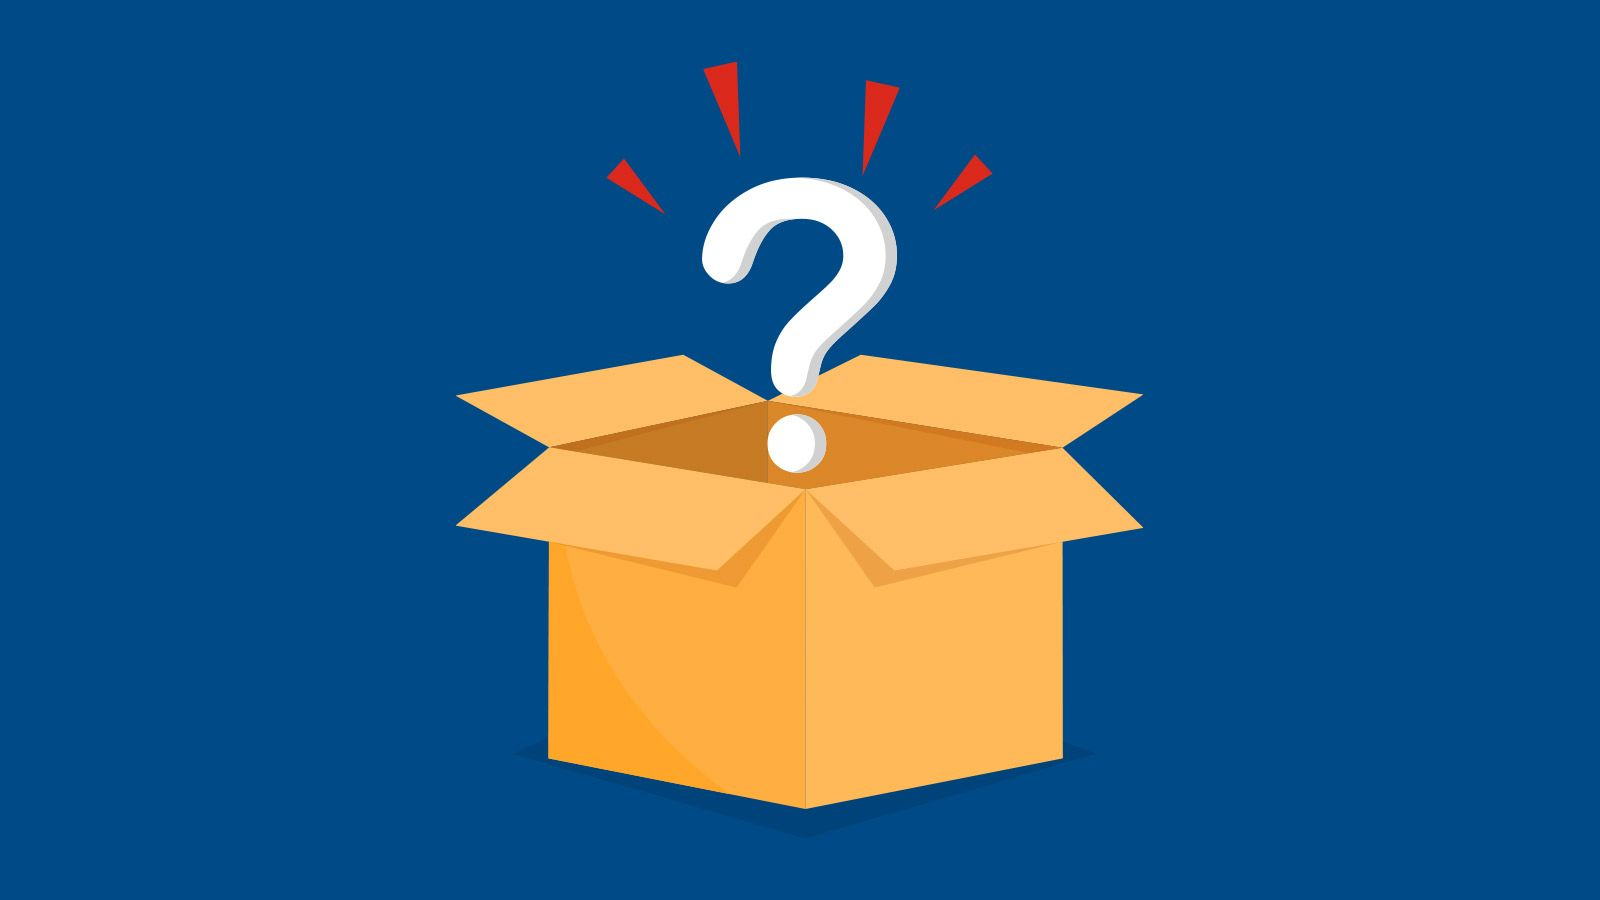 I'm a Lost Package: How Can You Find Me?